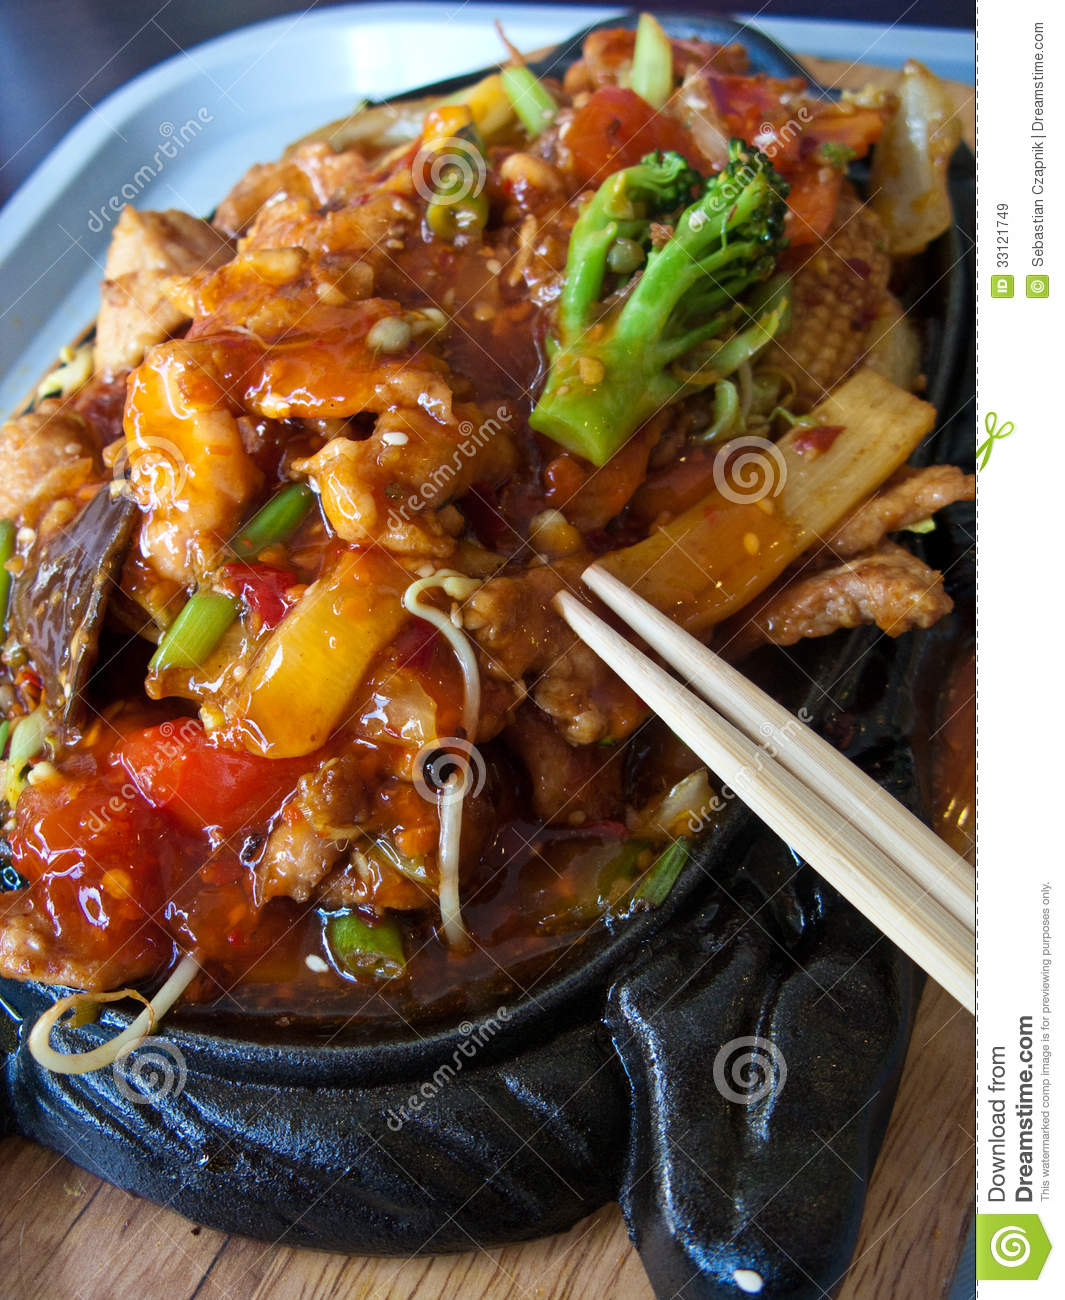 Chinese food in elegant restaurant royalty free stock images image 33121749 - Delicious chinese cuisine ...